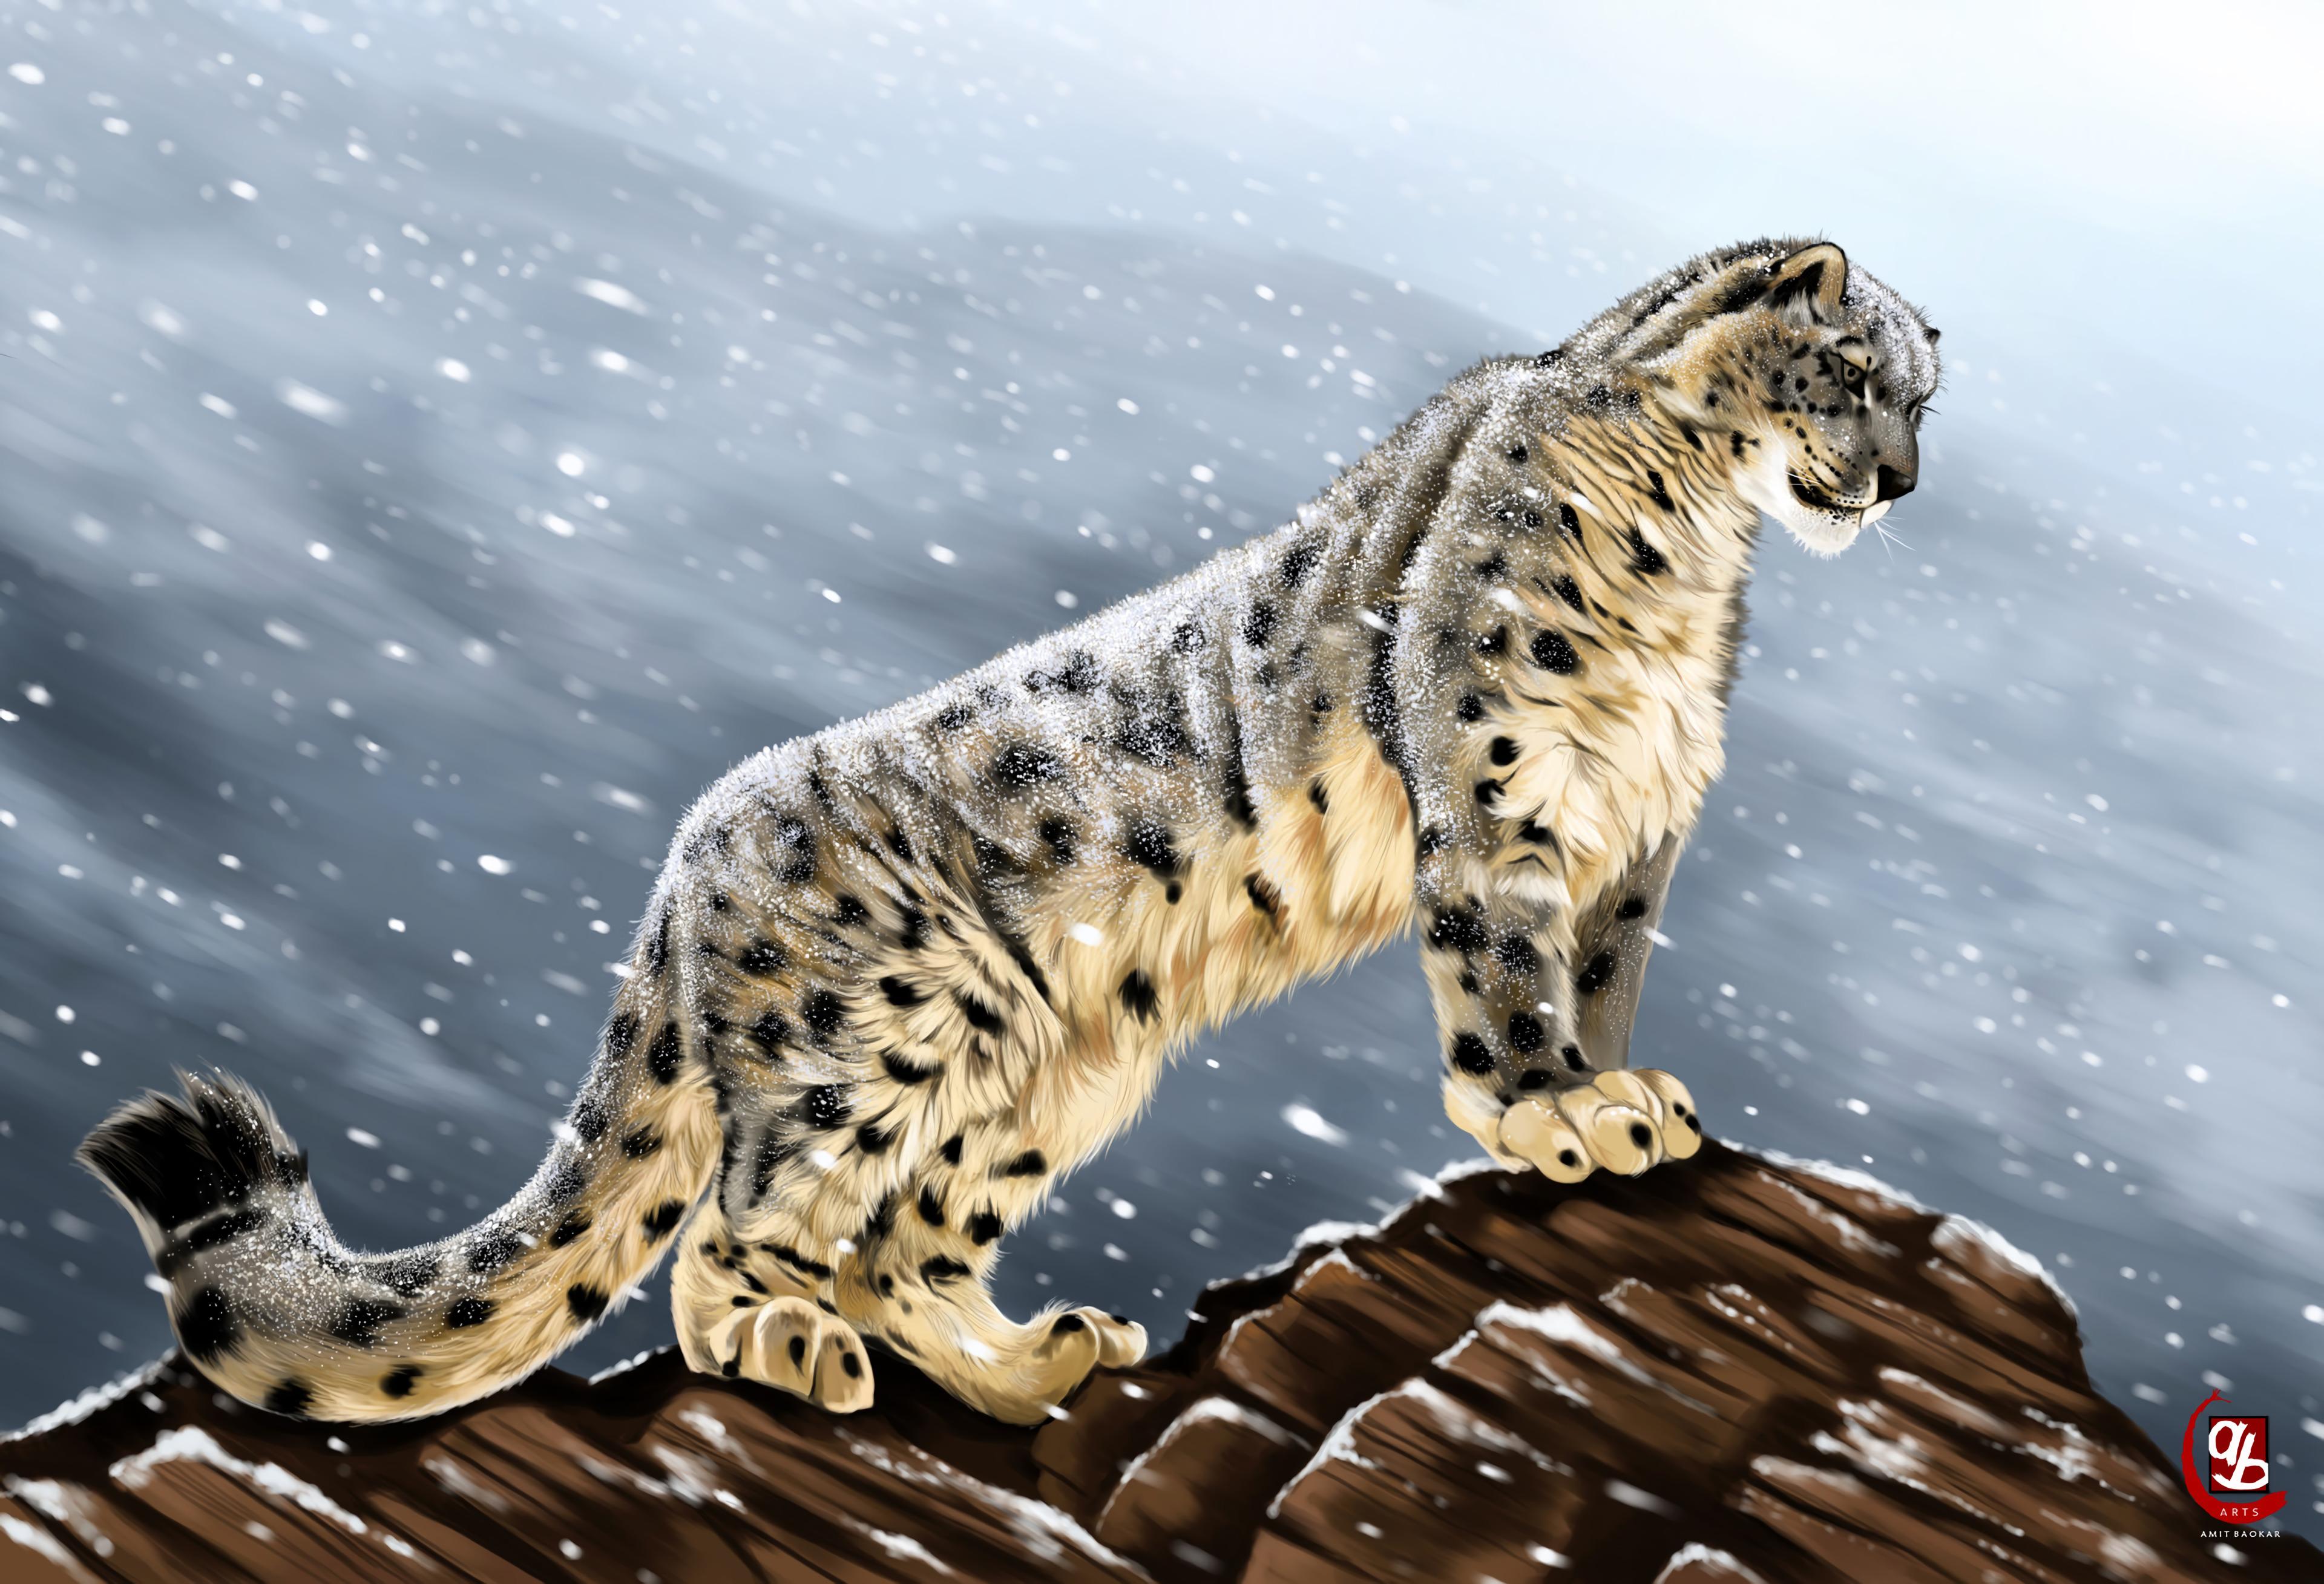 57318 download wallpaper Big Cat, Predator, Sight, Opinion, Stones, Art, Snow Leopard screensavers and pictures for free